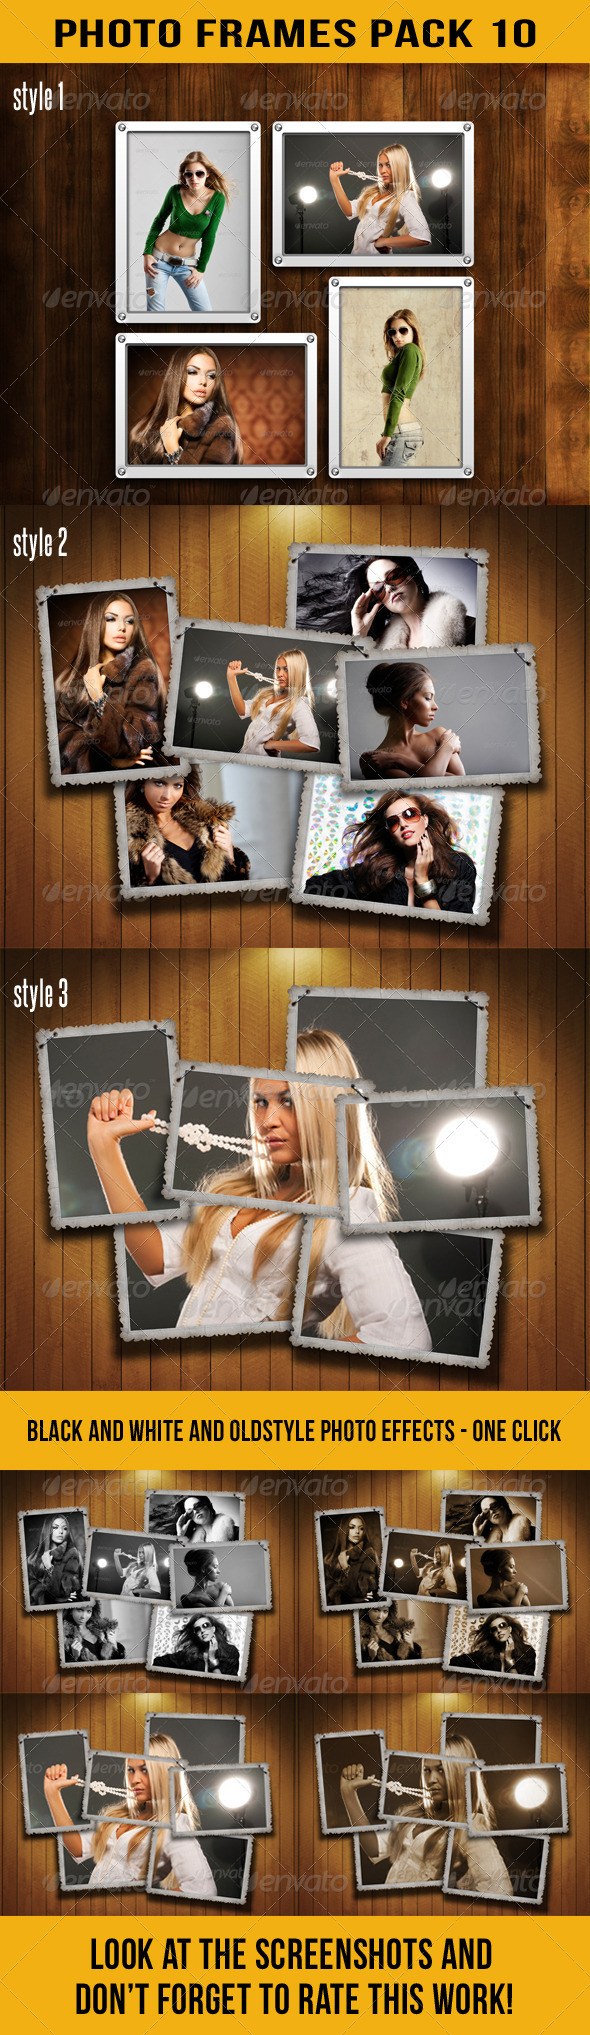 GraphicRiver Photo Frames Pack 10 6295482